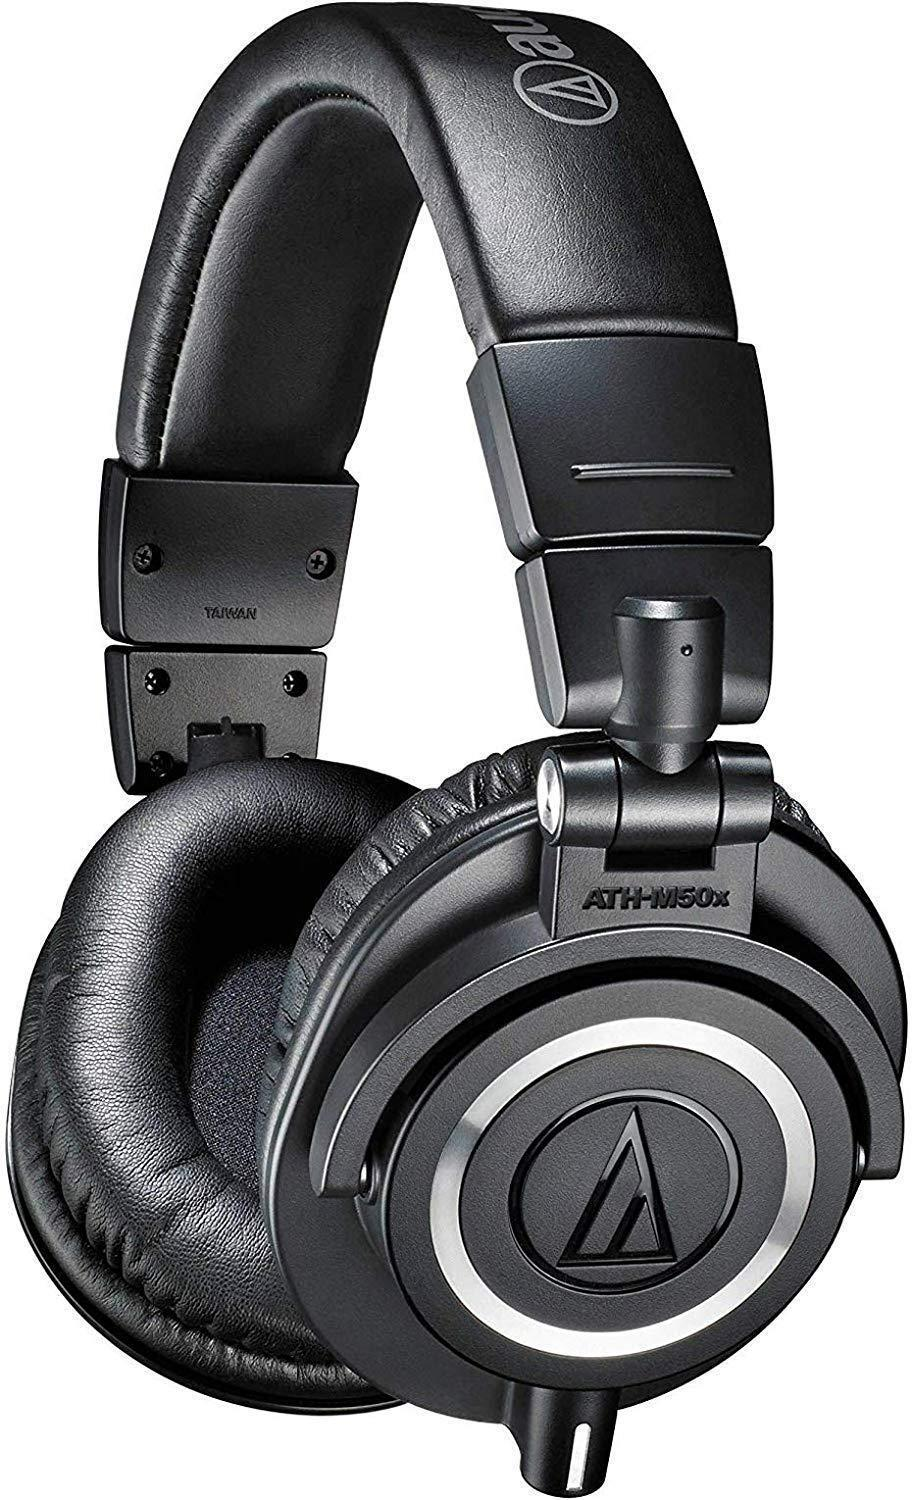 Audio-Technica ATH-M50x Open Ear Headphones